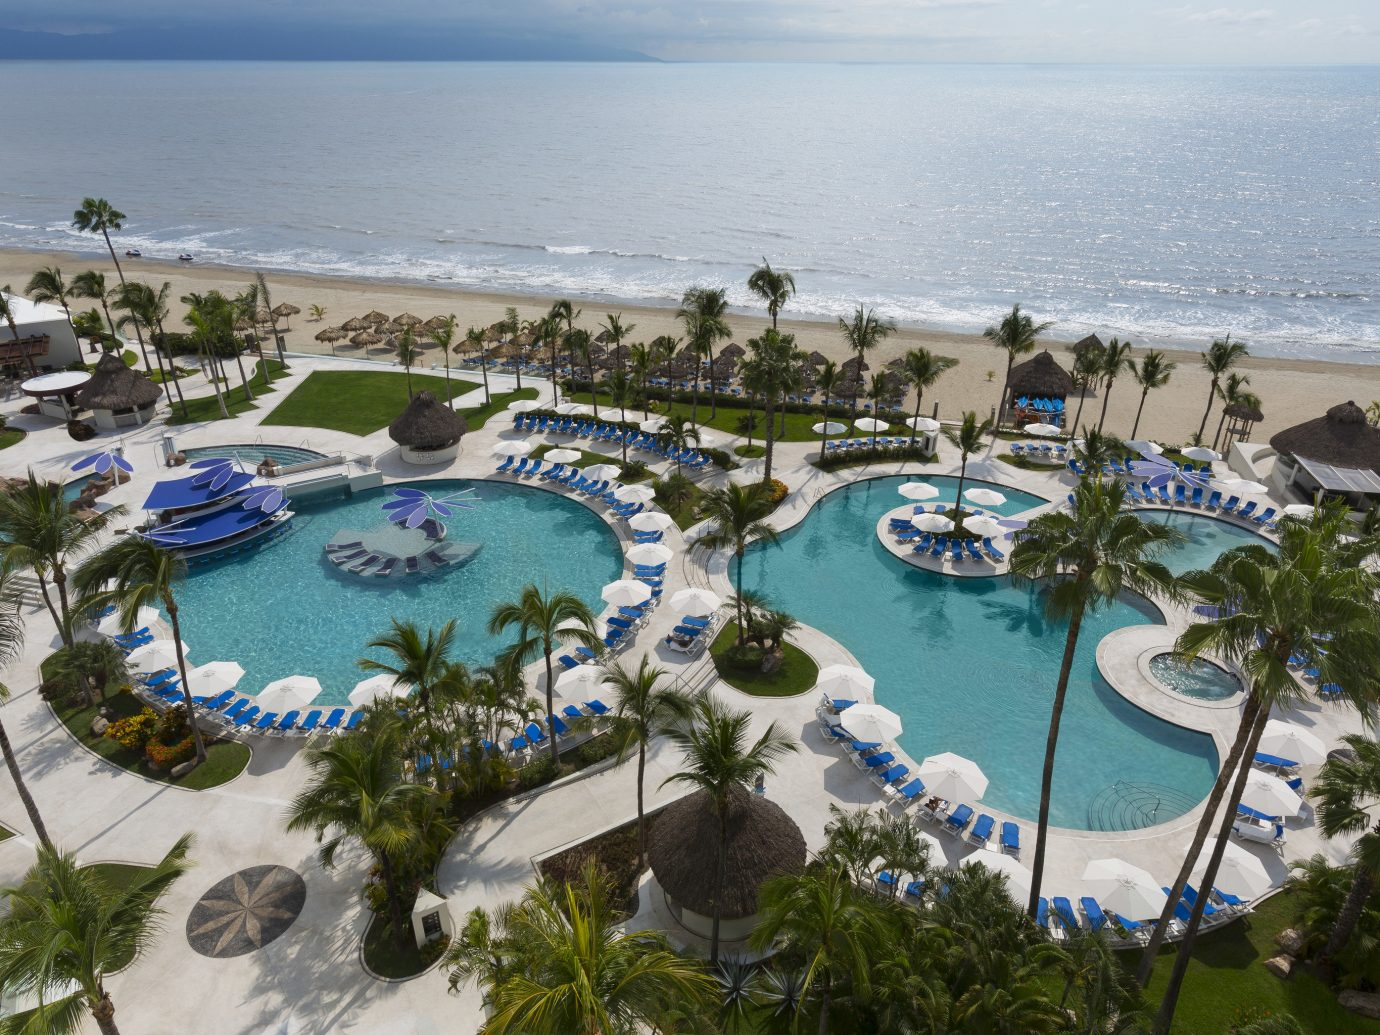 All-Inclusive Resorts Hotels outdoor sky water Resort swimming pool leisure resort town Nature vacation tourism palm tree arecales tropics Sea aerial photography tree bay Lagoon recreation shore